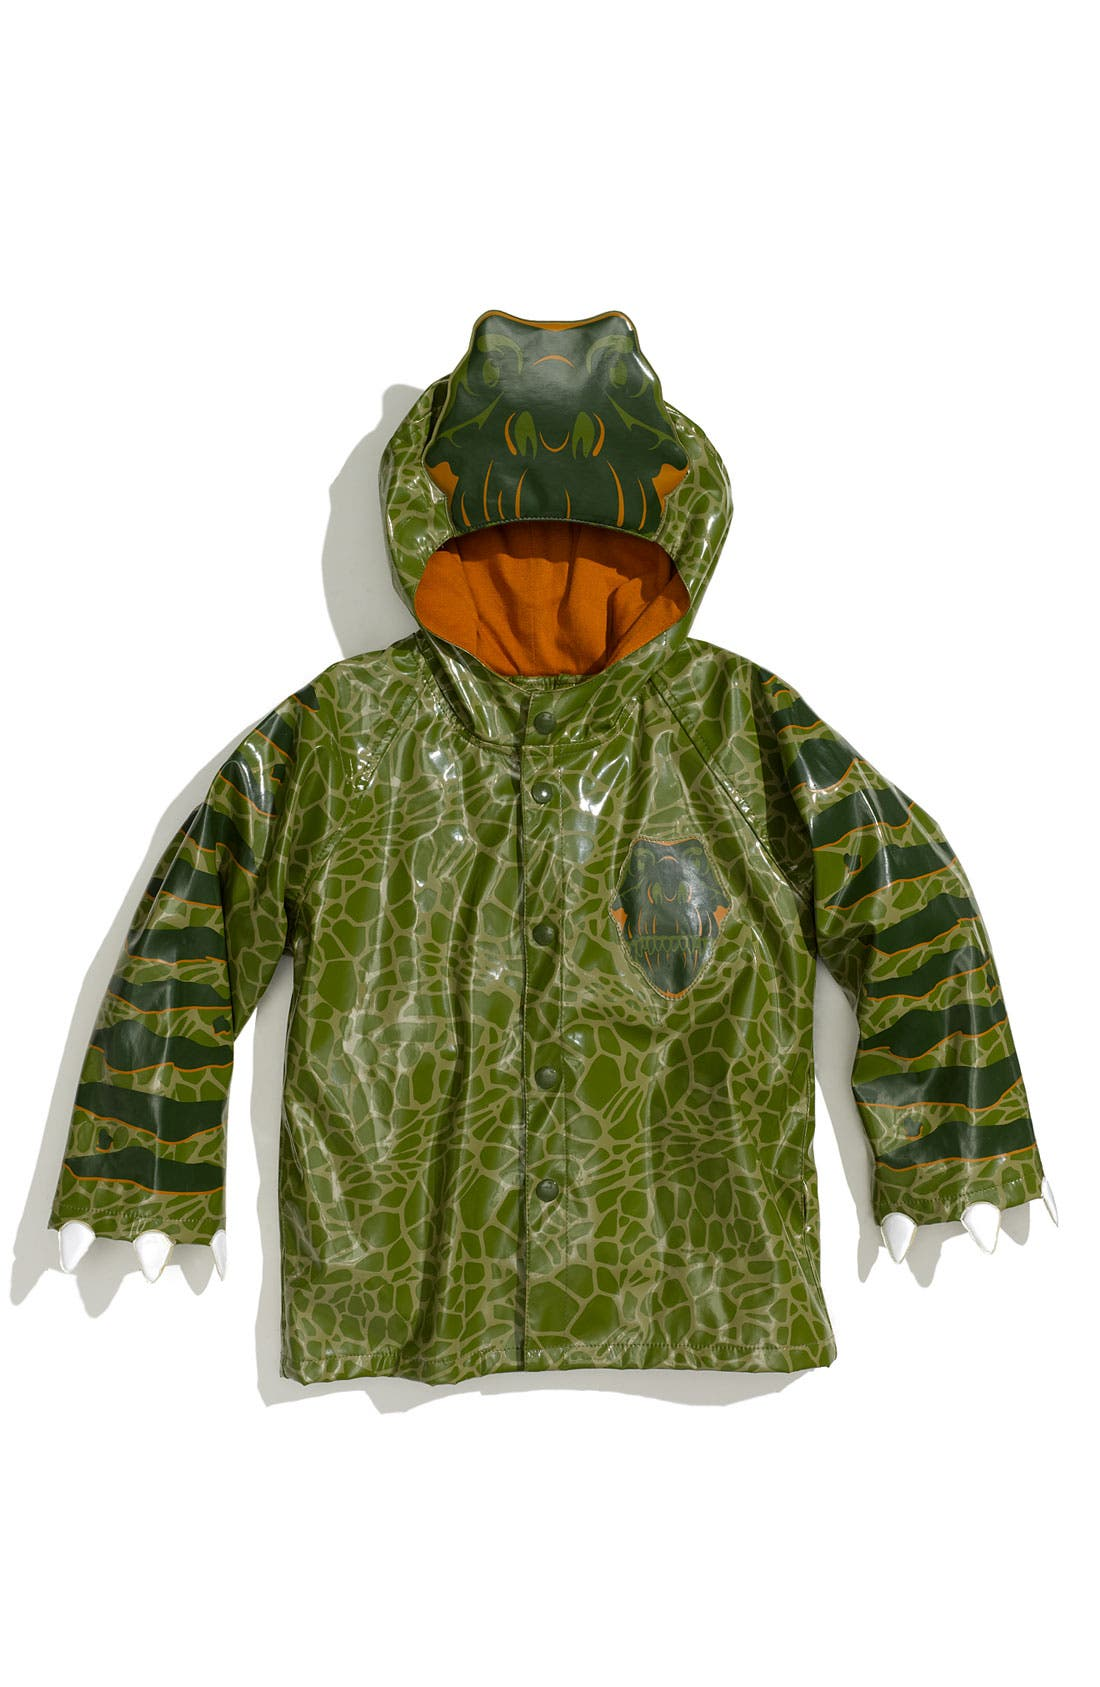 Alternate Image 1 Selected - Western Chief 'Dino' Raincoat (Toddler & Little Boys)